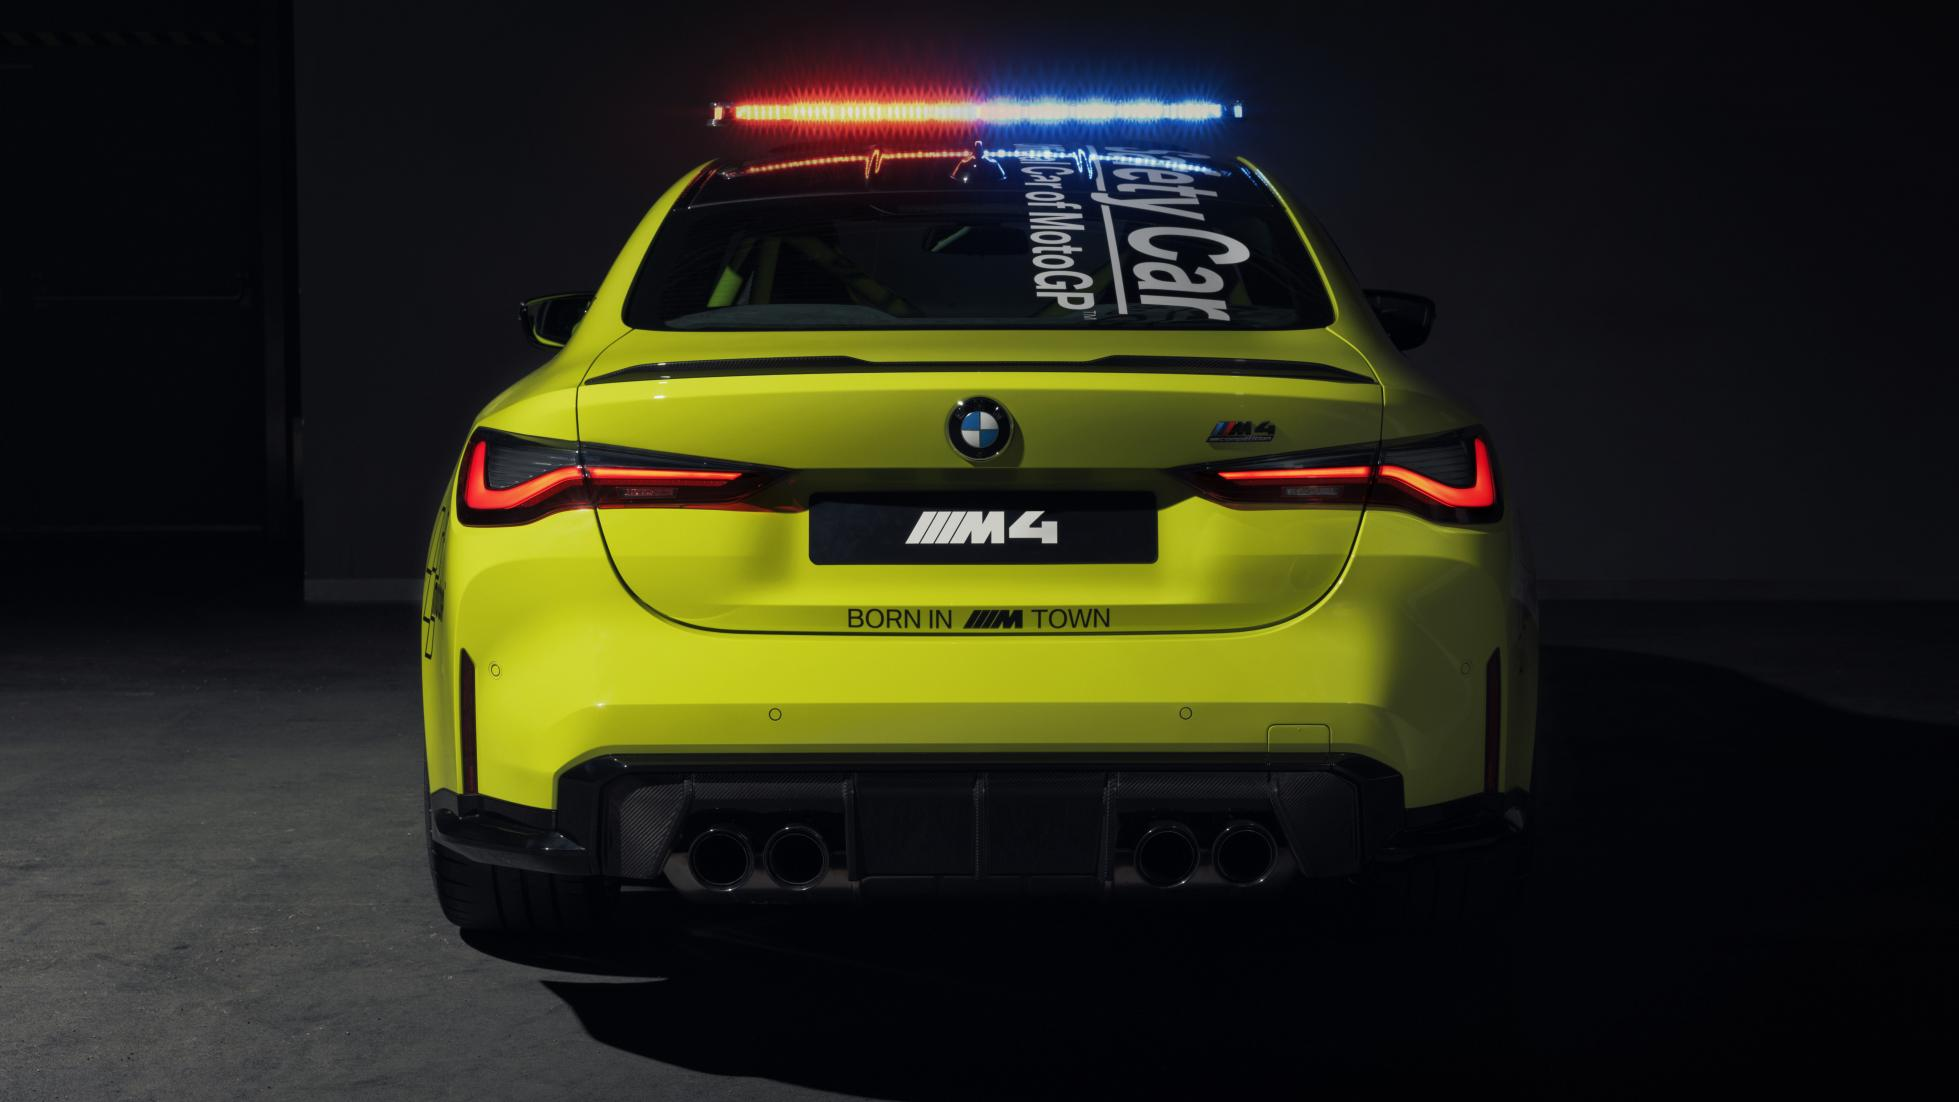 The BMW M4 as a MotoGP safety car, rear view